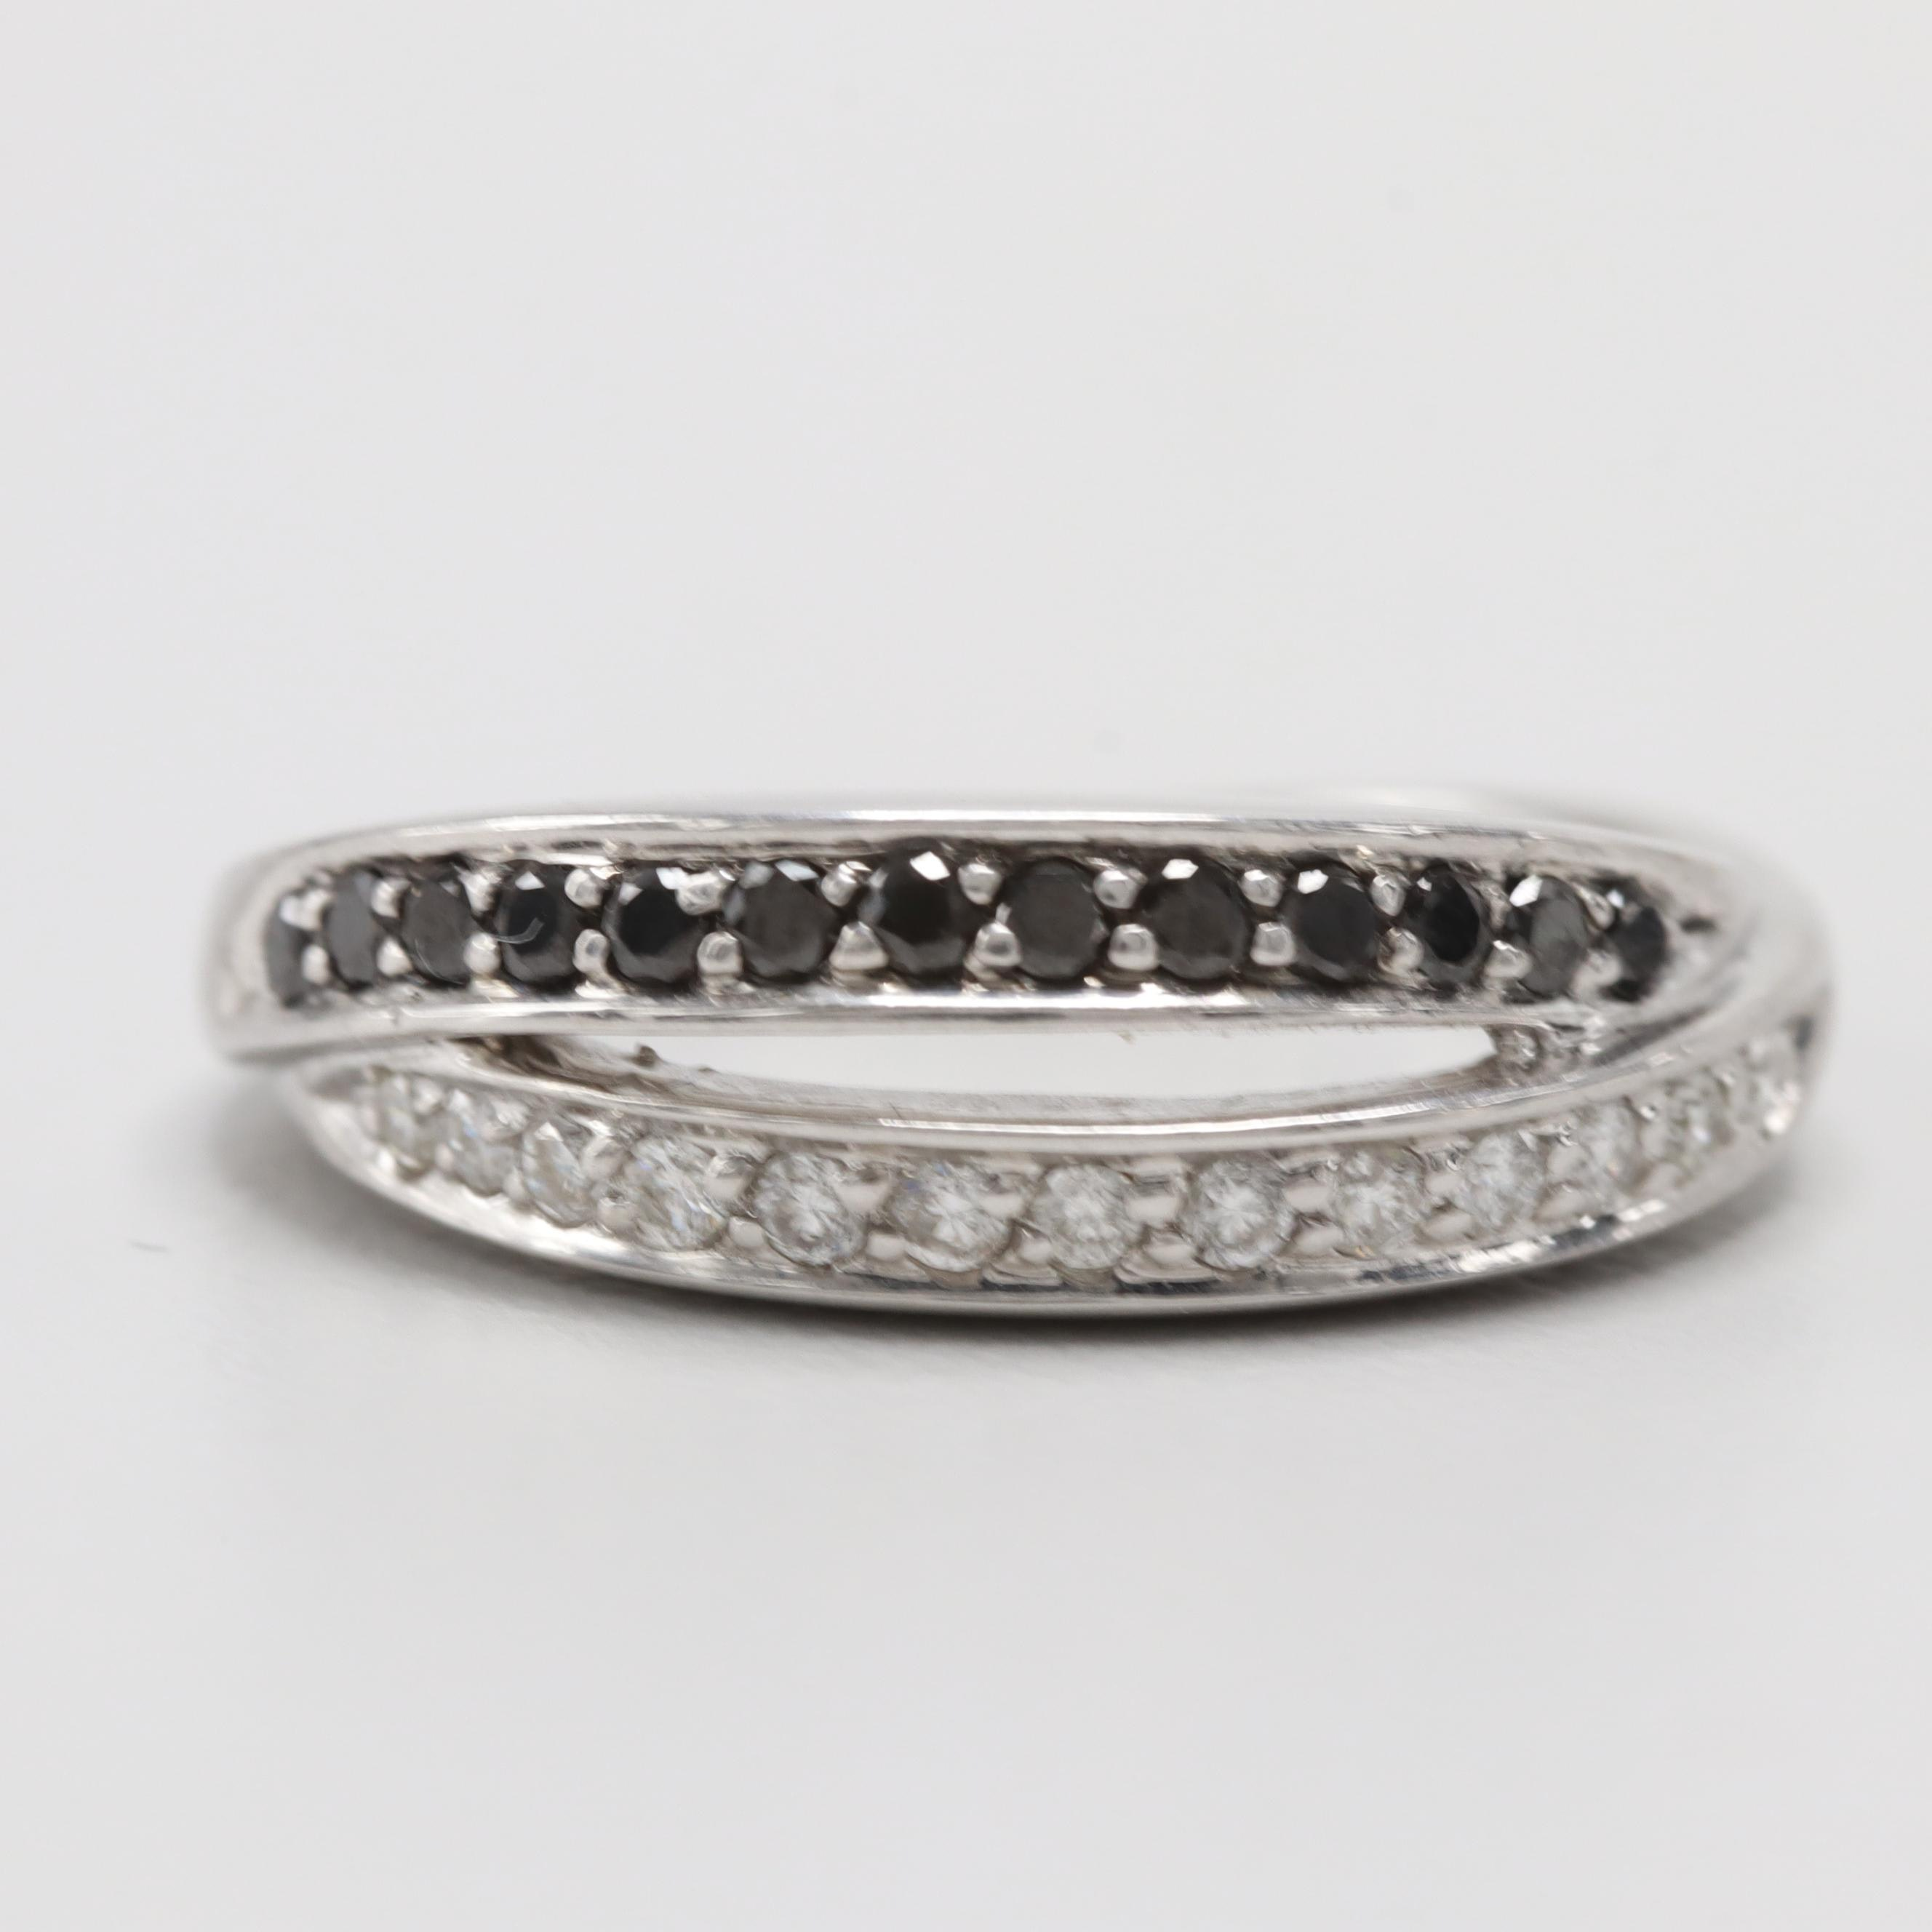 14K White Gold Diamond and Black Diamond Ring